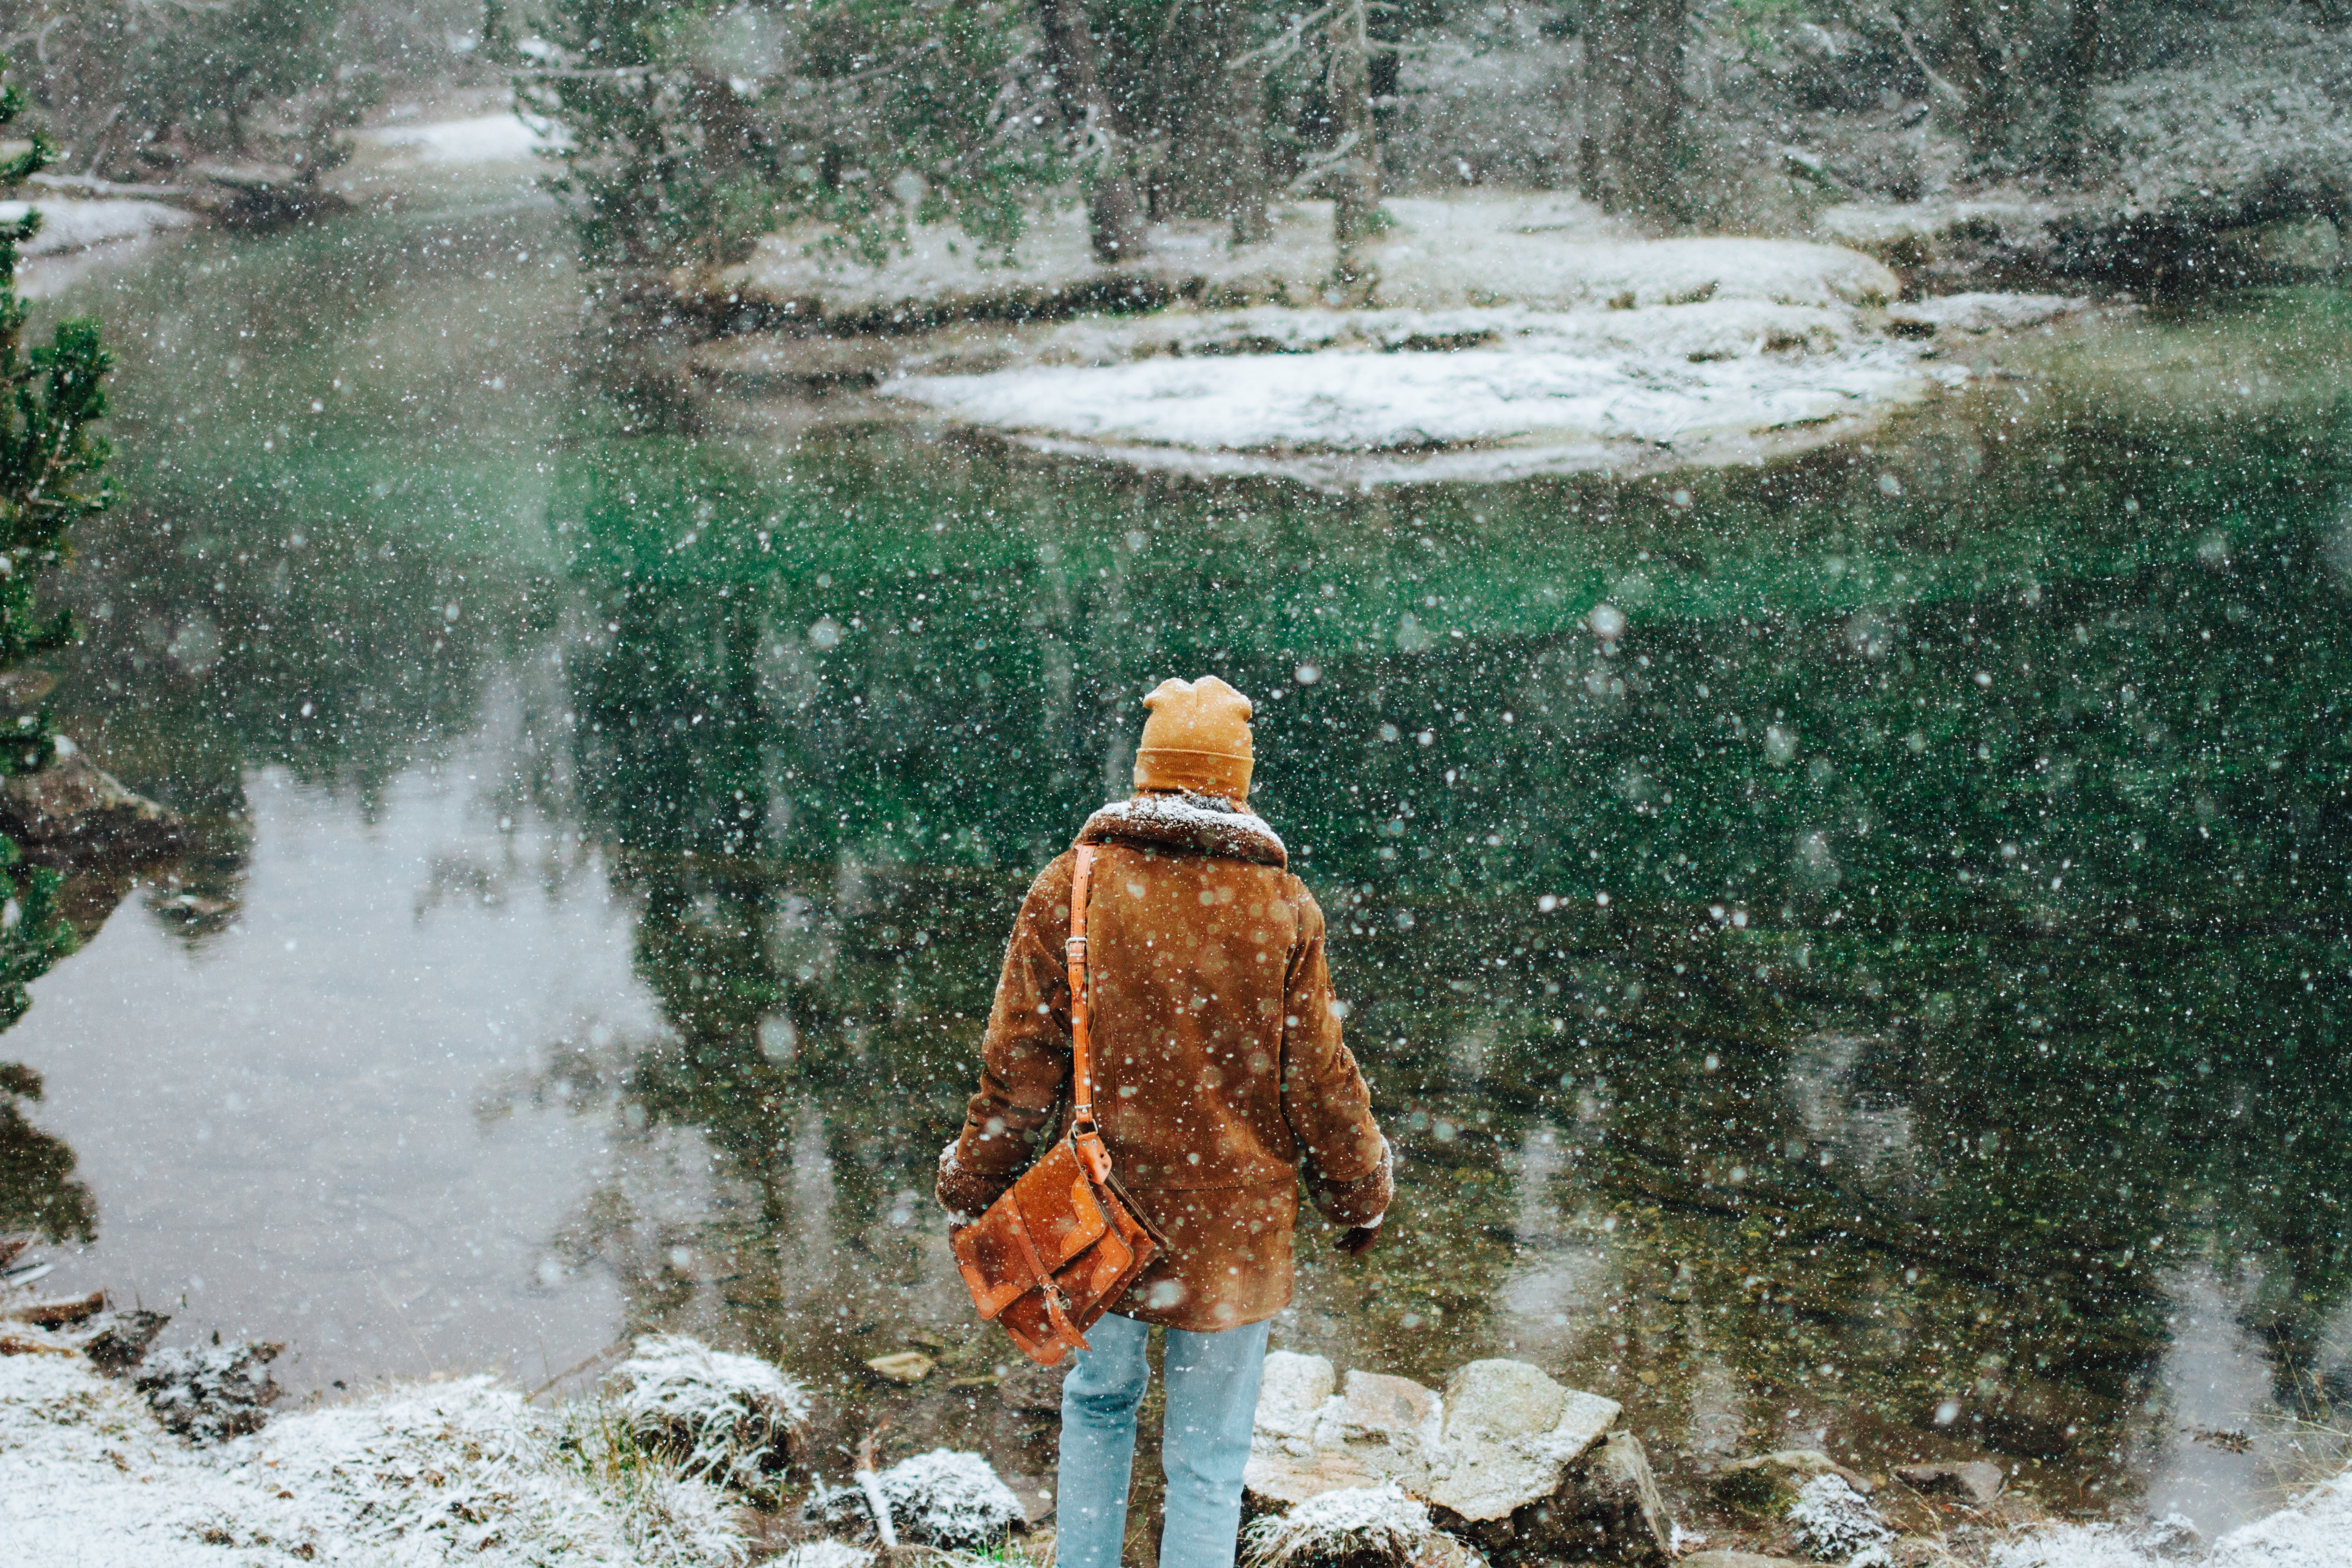 person wearing jacket standing near body of water